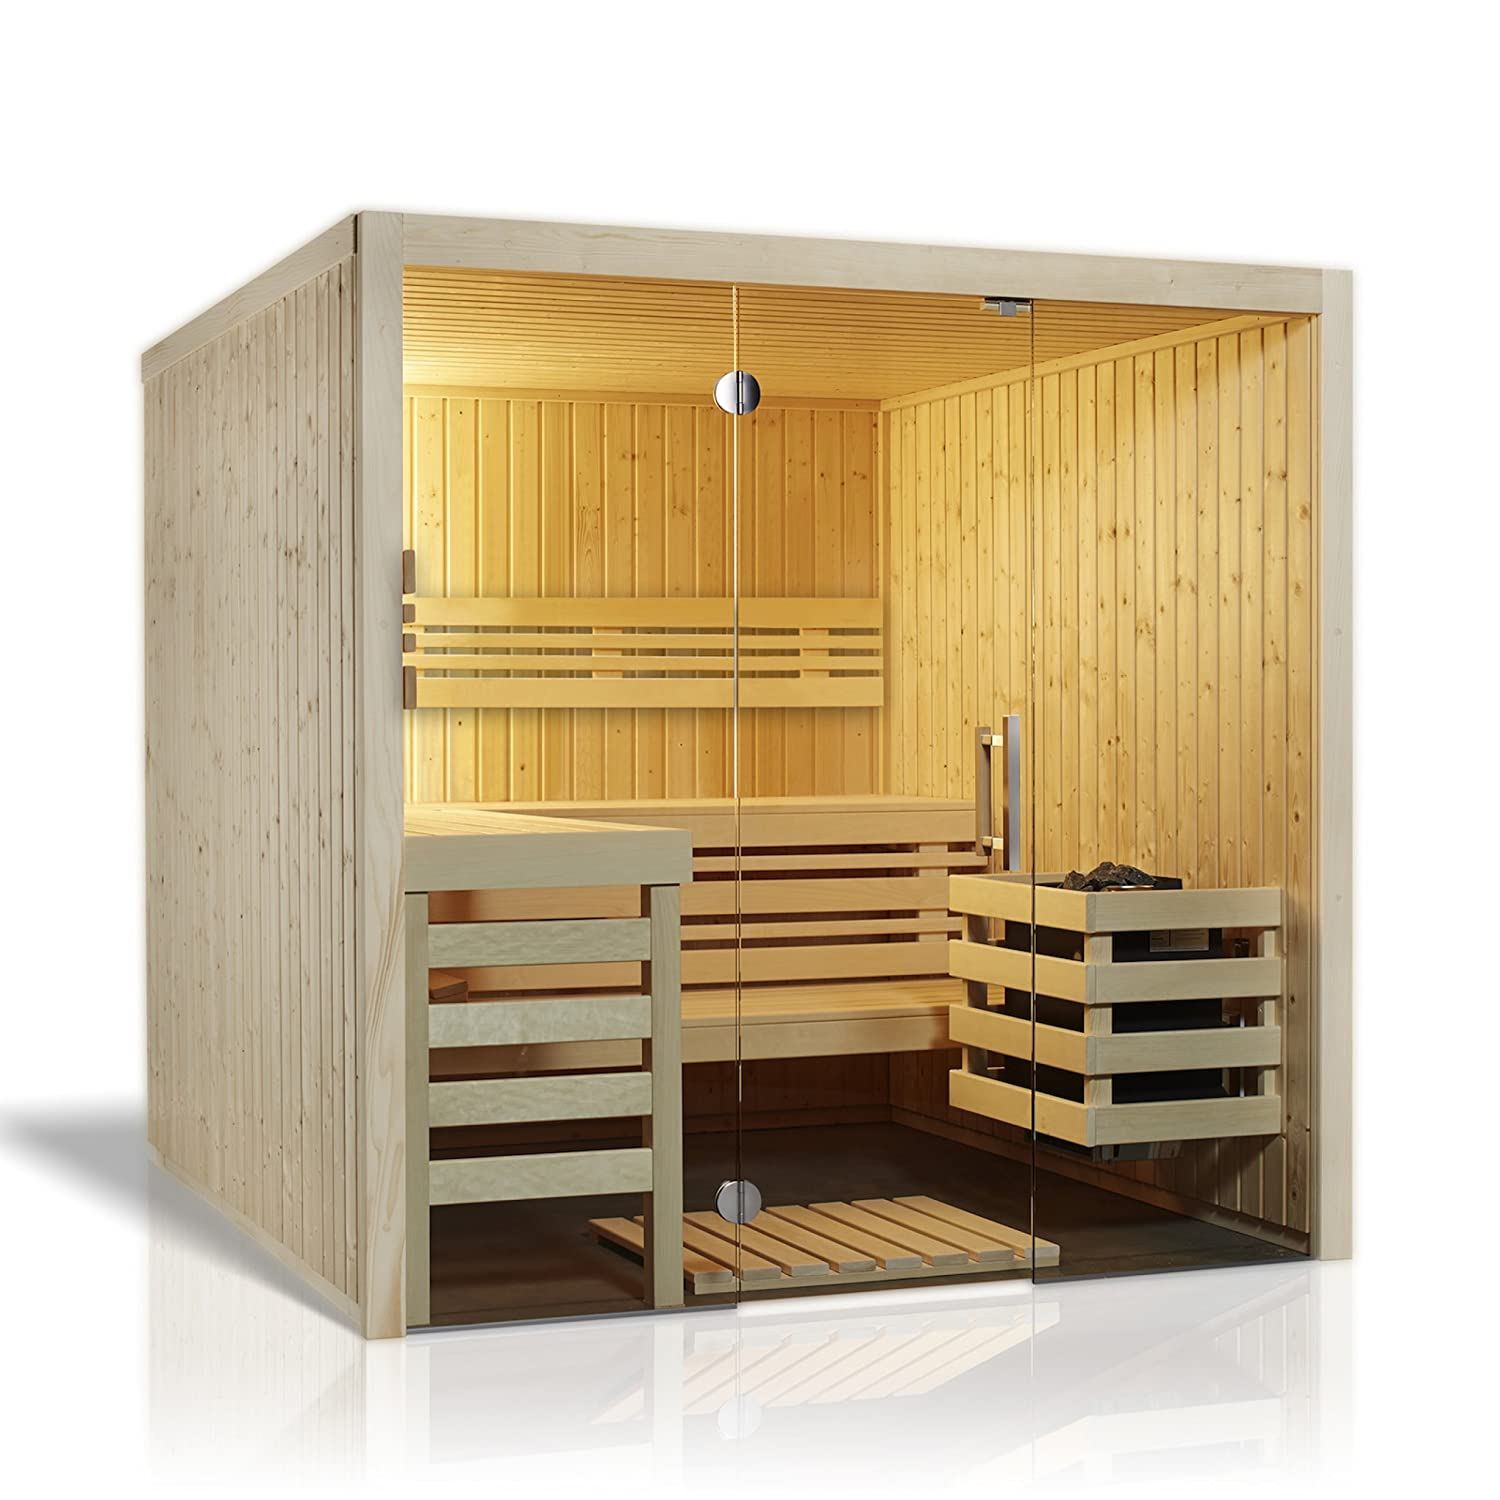 Infraworld - Sauna Panorama 180 Element Sauna 210 x 180 cm en Norte. Abeto 391071: Amazon.es: Jardín